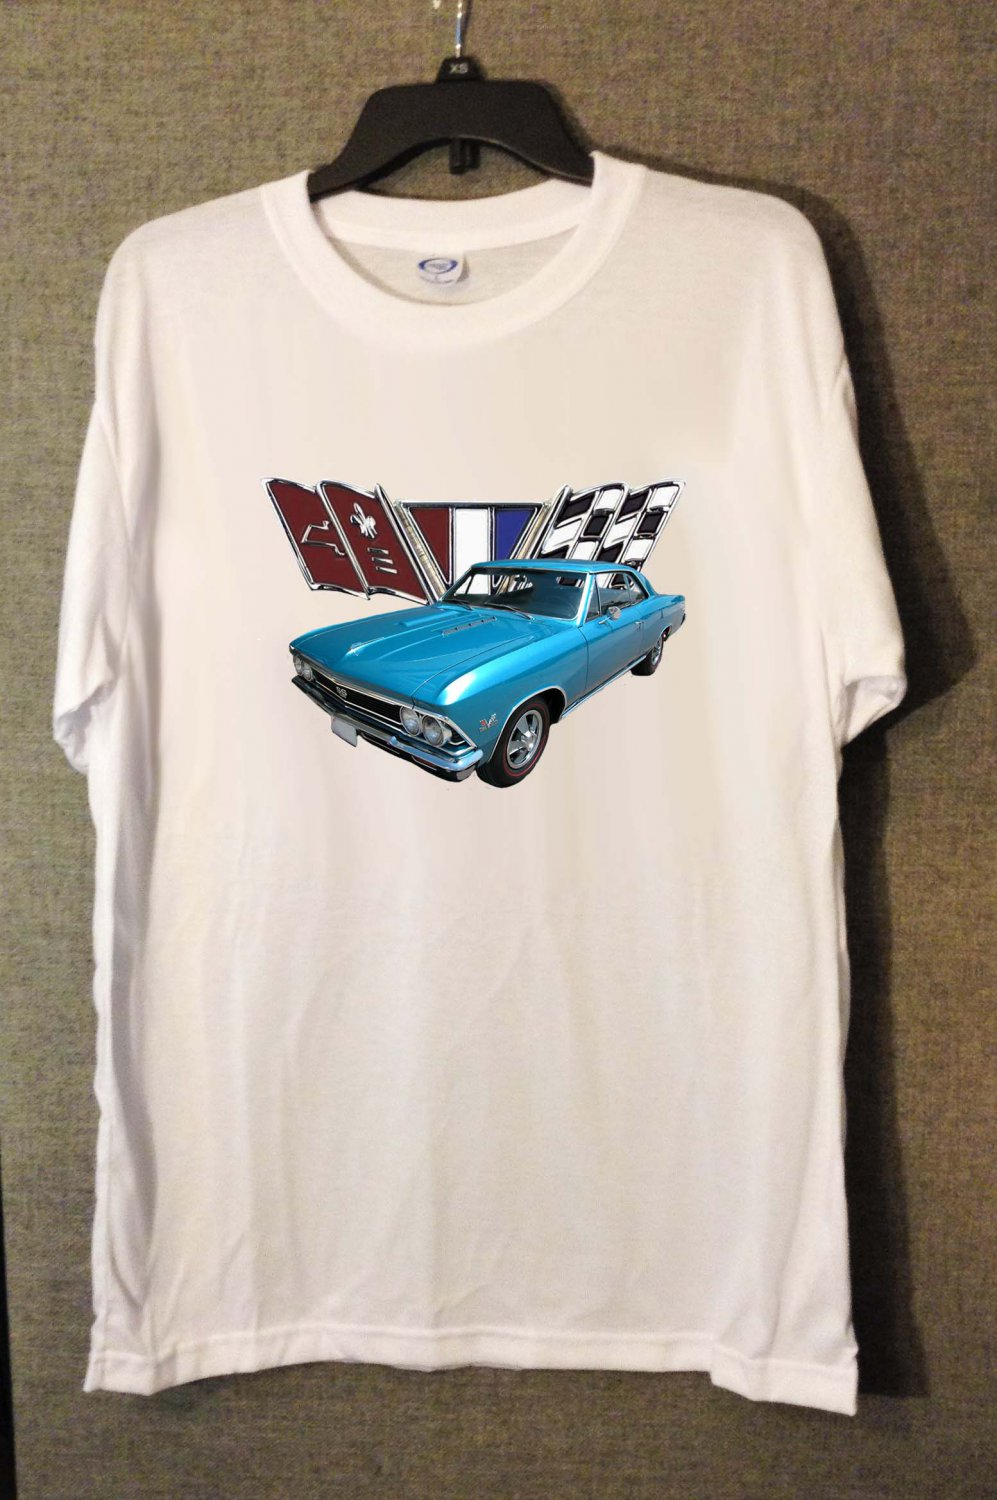 New Blue 1966 Chevy Chevelle Flag LOGO white T-shirt  (Medium)